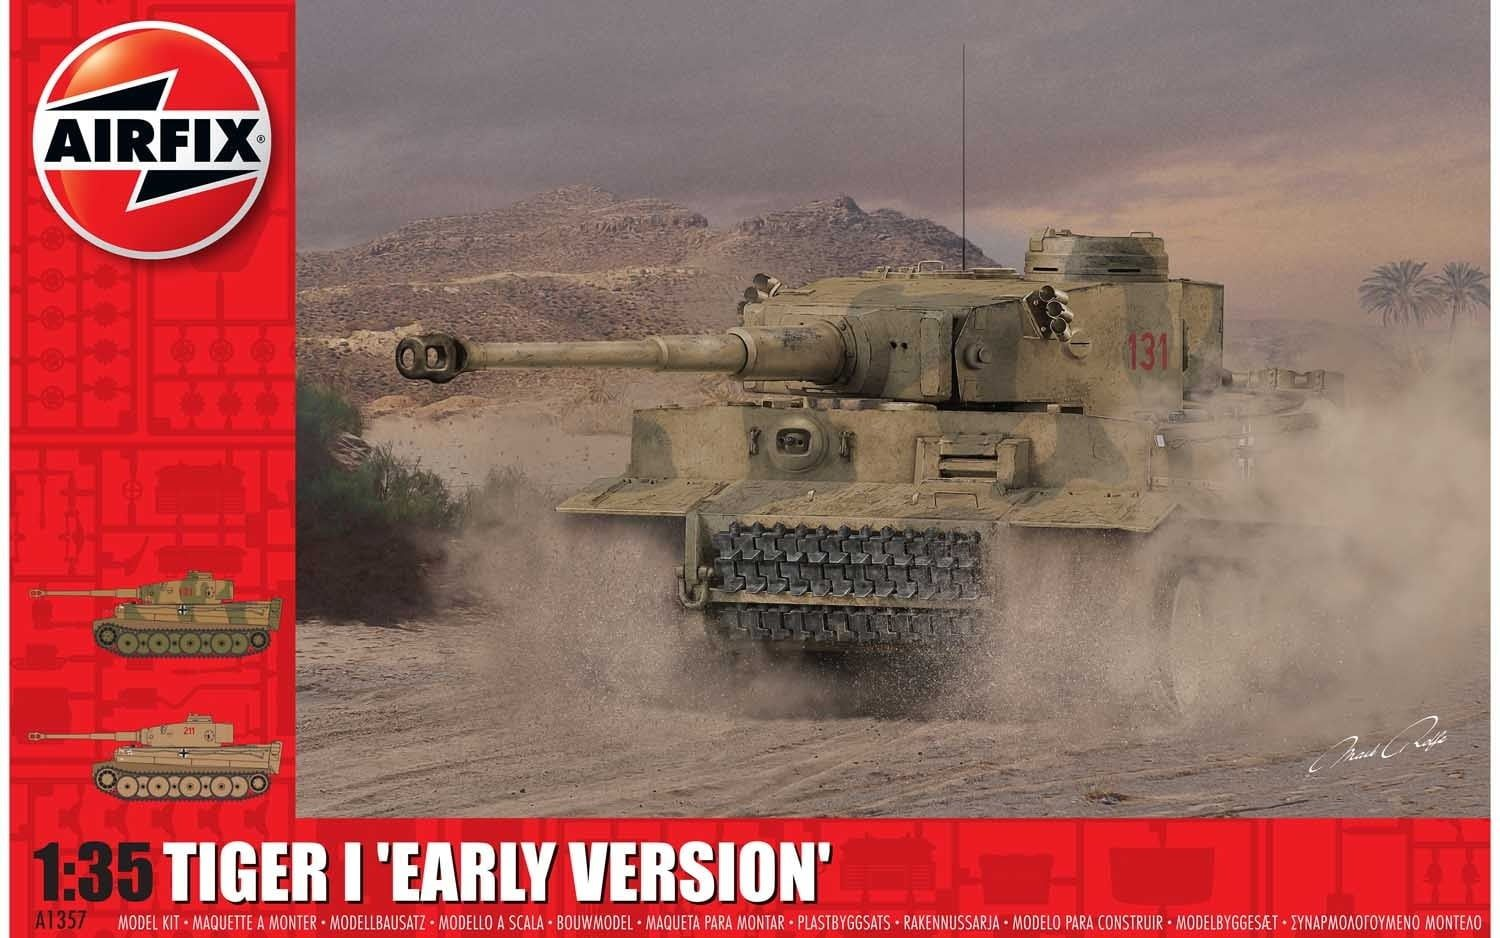 Airfix Tiger 1 Early Production Version 1:35 Scale Plastic Model Kit